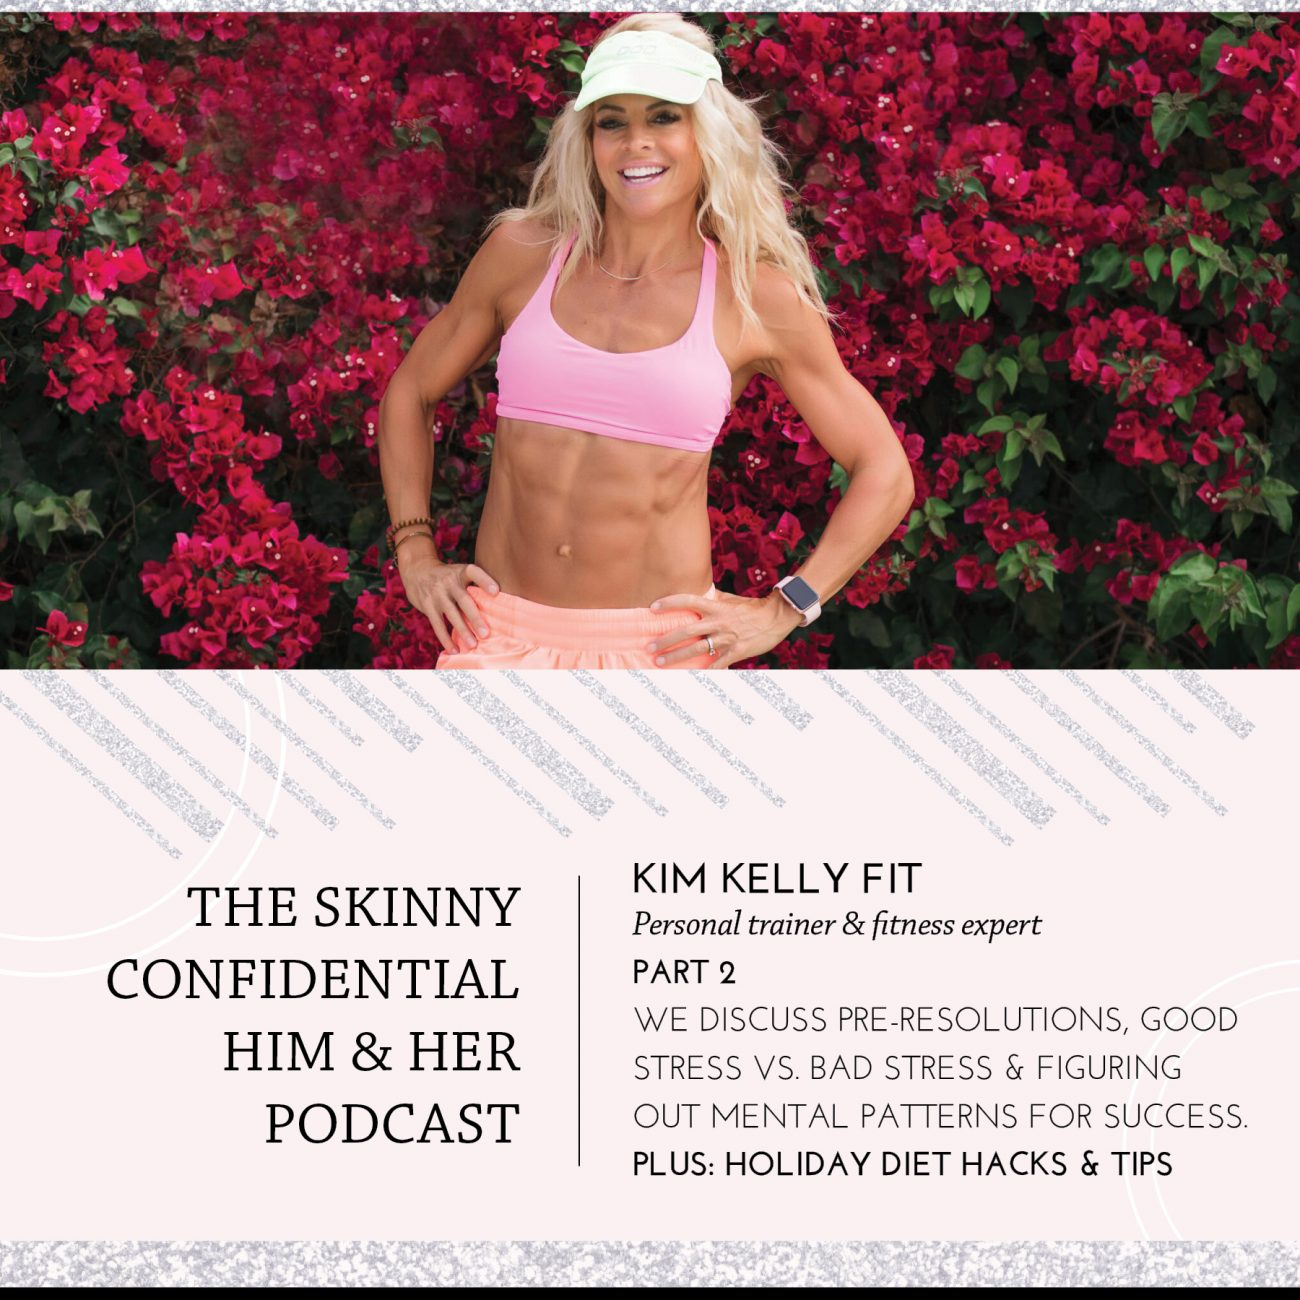 kim kelly fitness expert podcast holiday tips